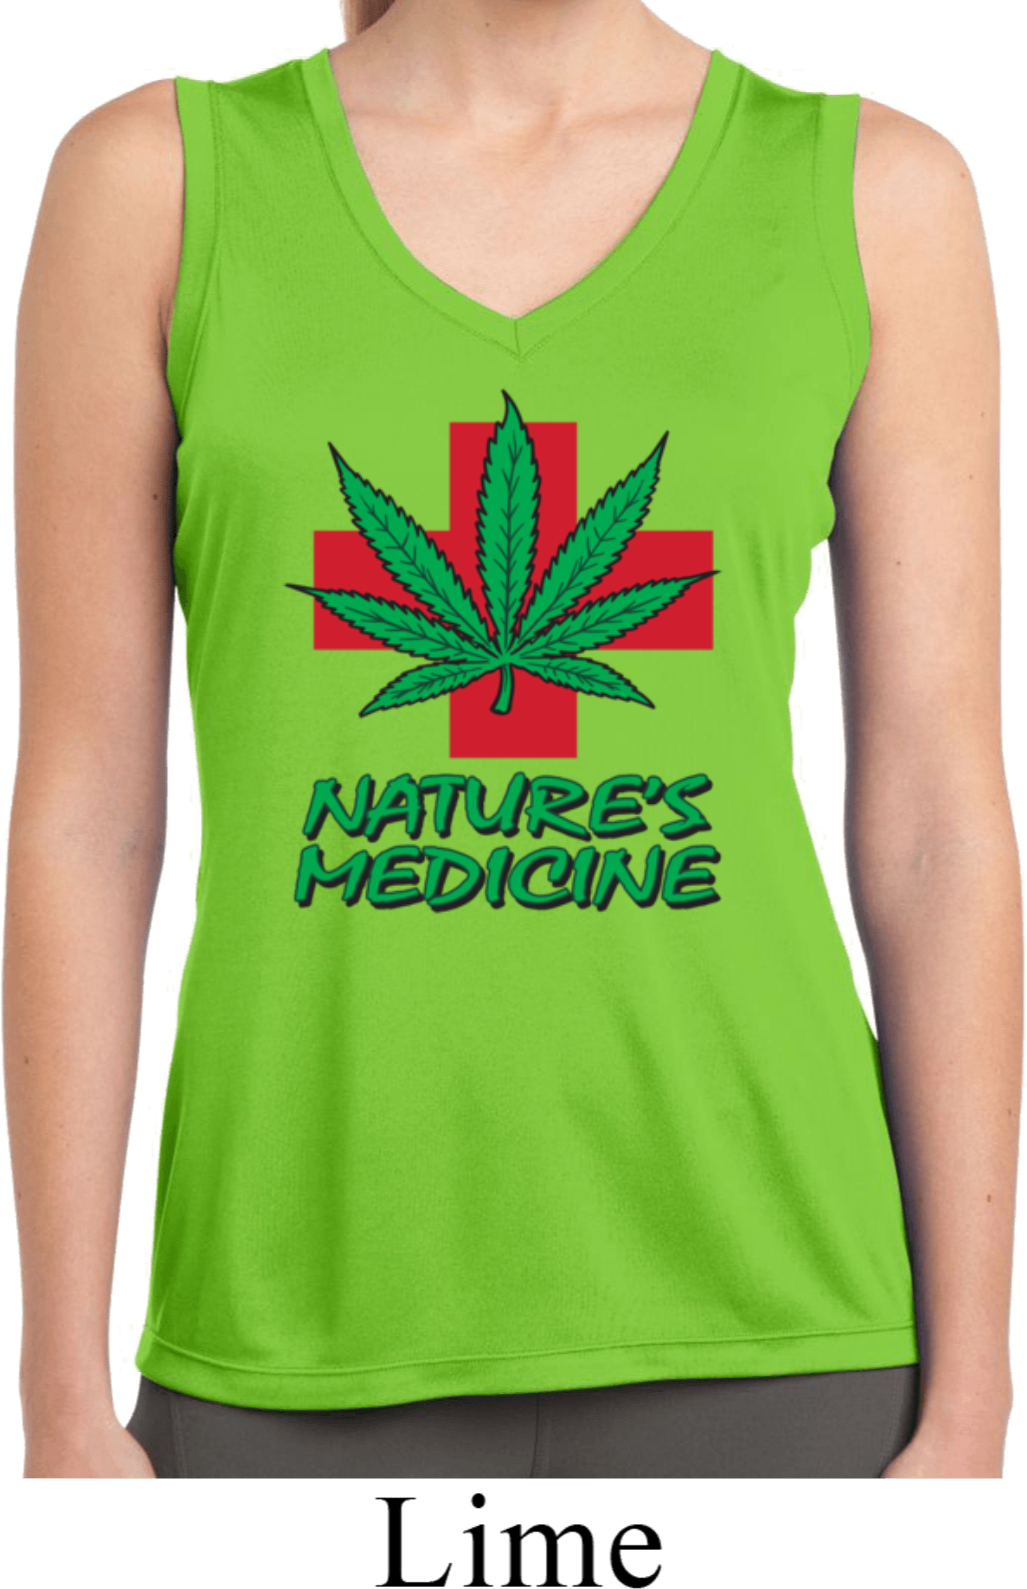 Ladies shirt natures medicine sleeveless moisture wicking for Sweat wicking t shirts